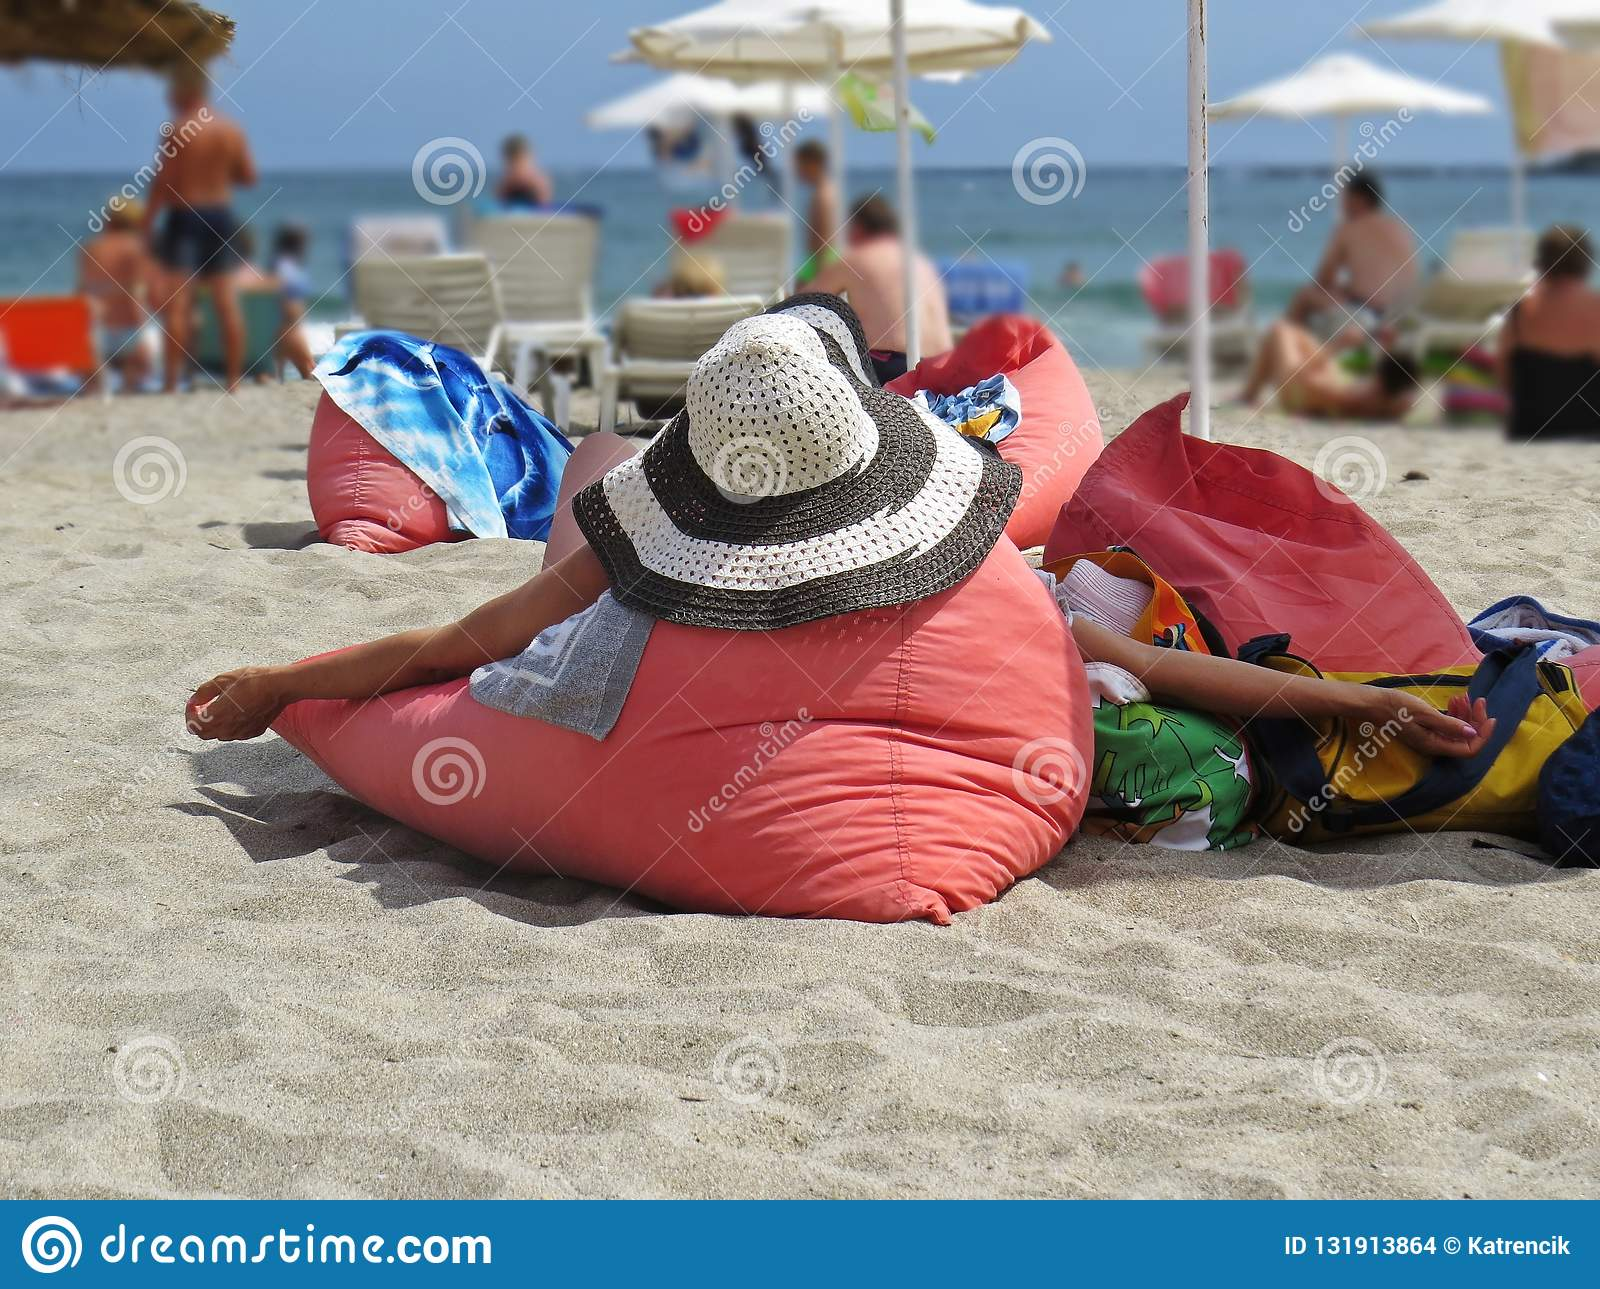 View at Woman from Back Lying on Red Pillow Cushion and Relaxing on Ocean Sand Beach Wearing Straw Hat During Summer Vacation